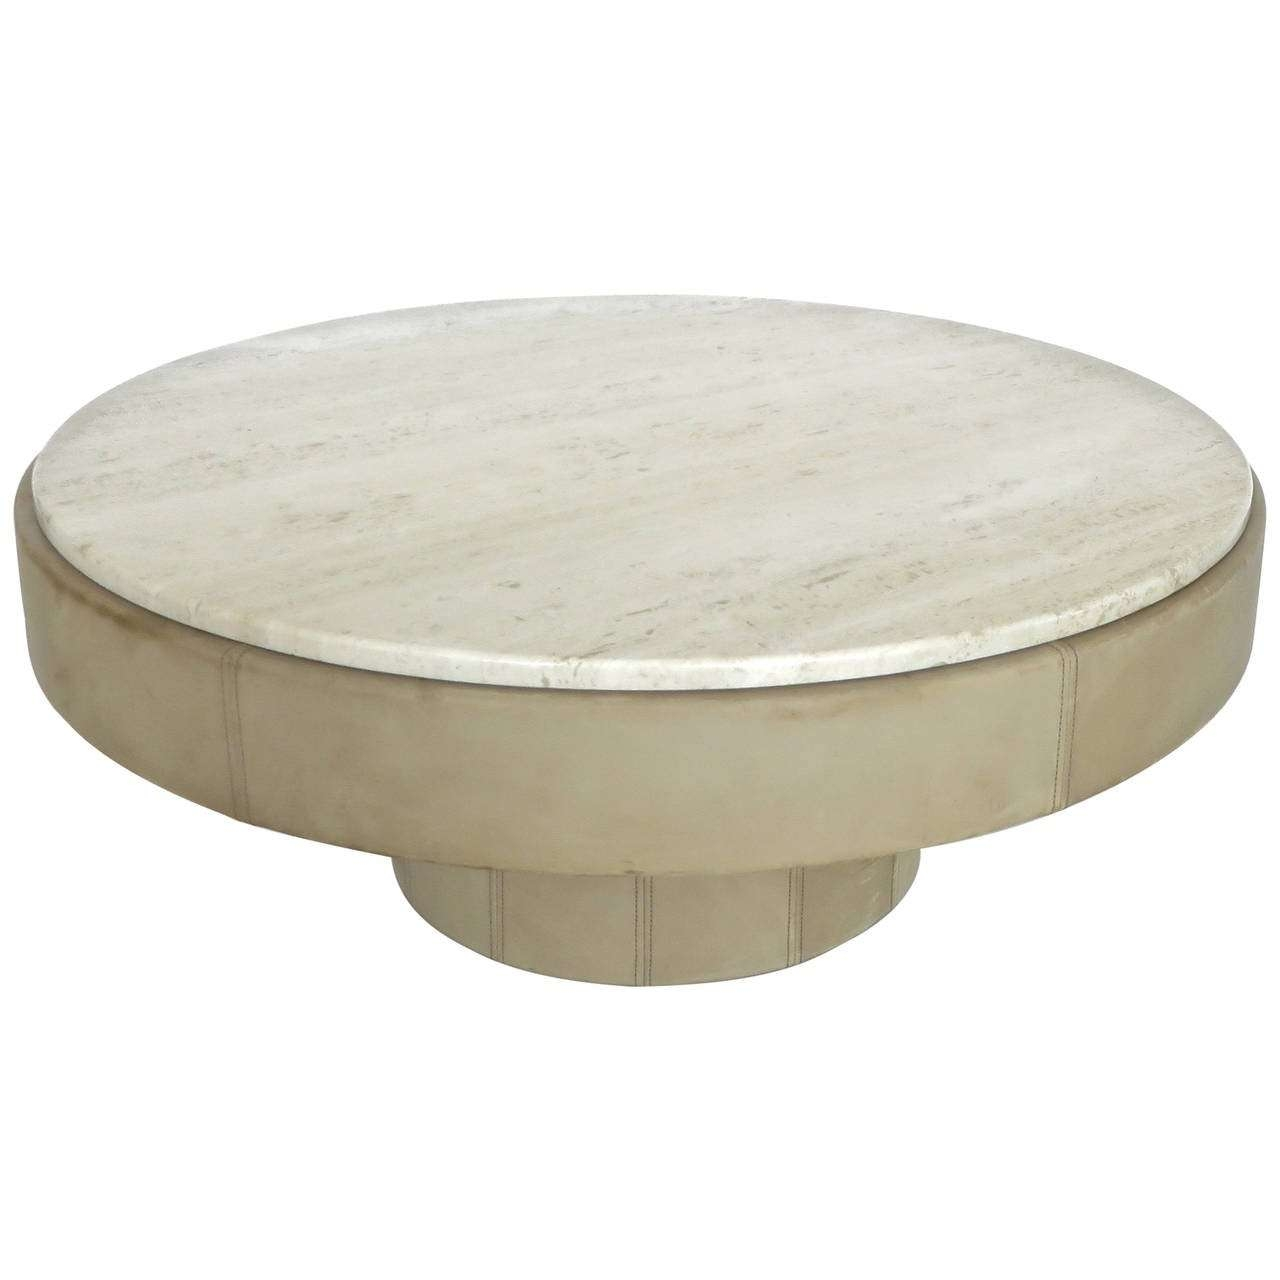 French Cream Leather And Travertine Marble Round Coffee Table At Throughout Favorite Marble Round Coffee Tables (View 5 of 20)